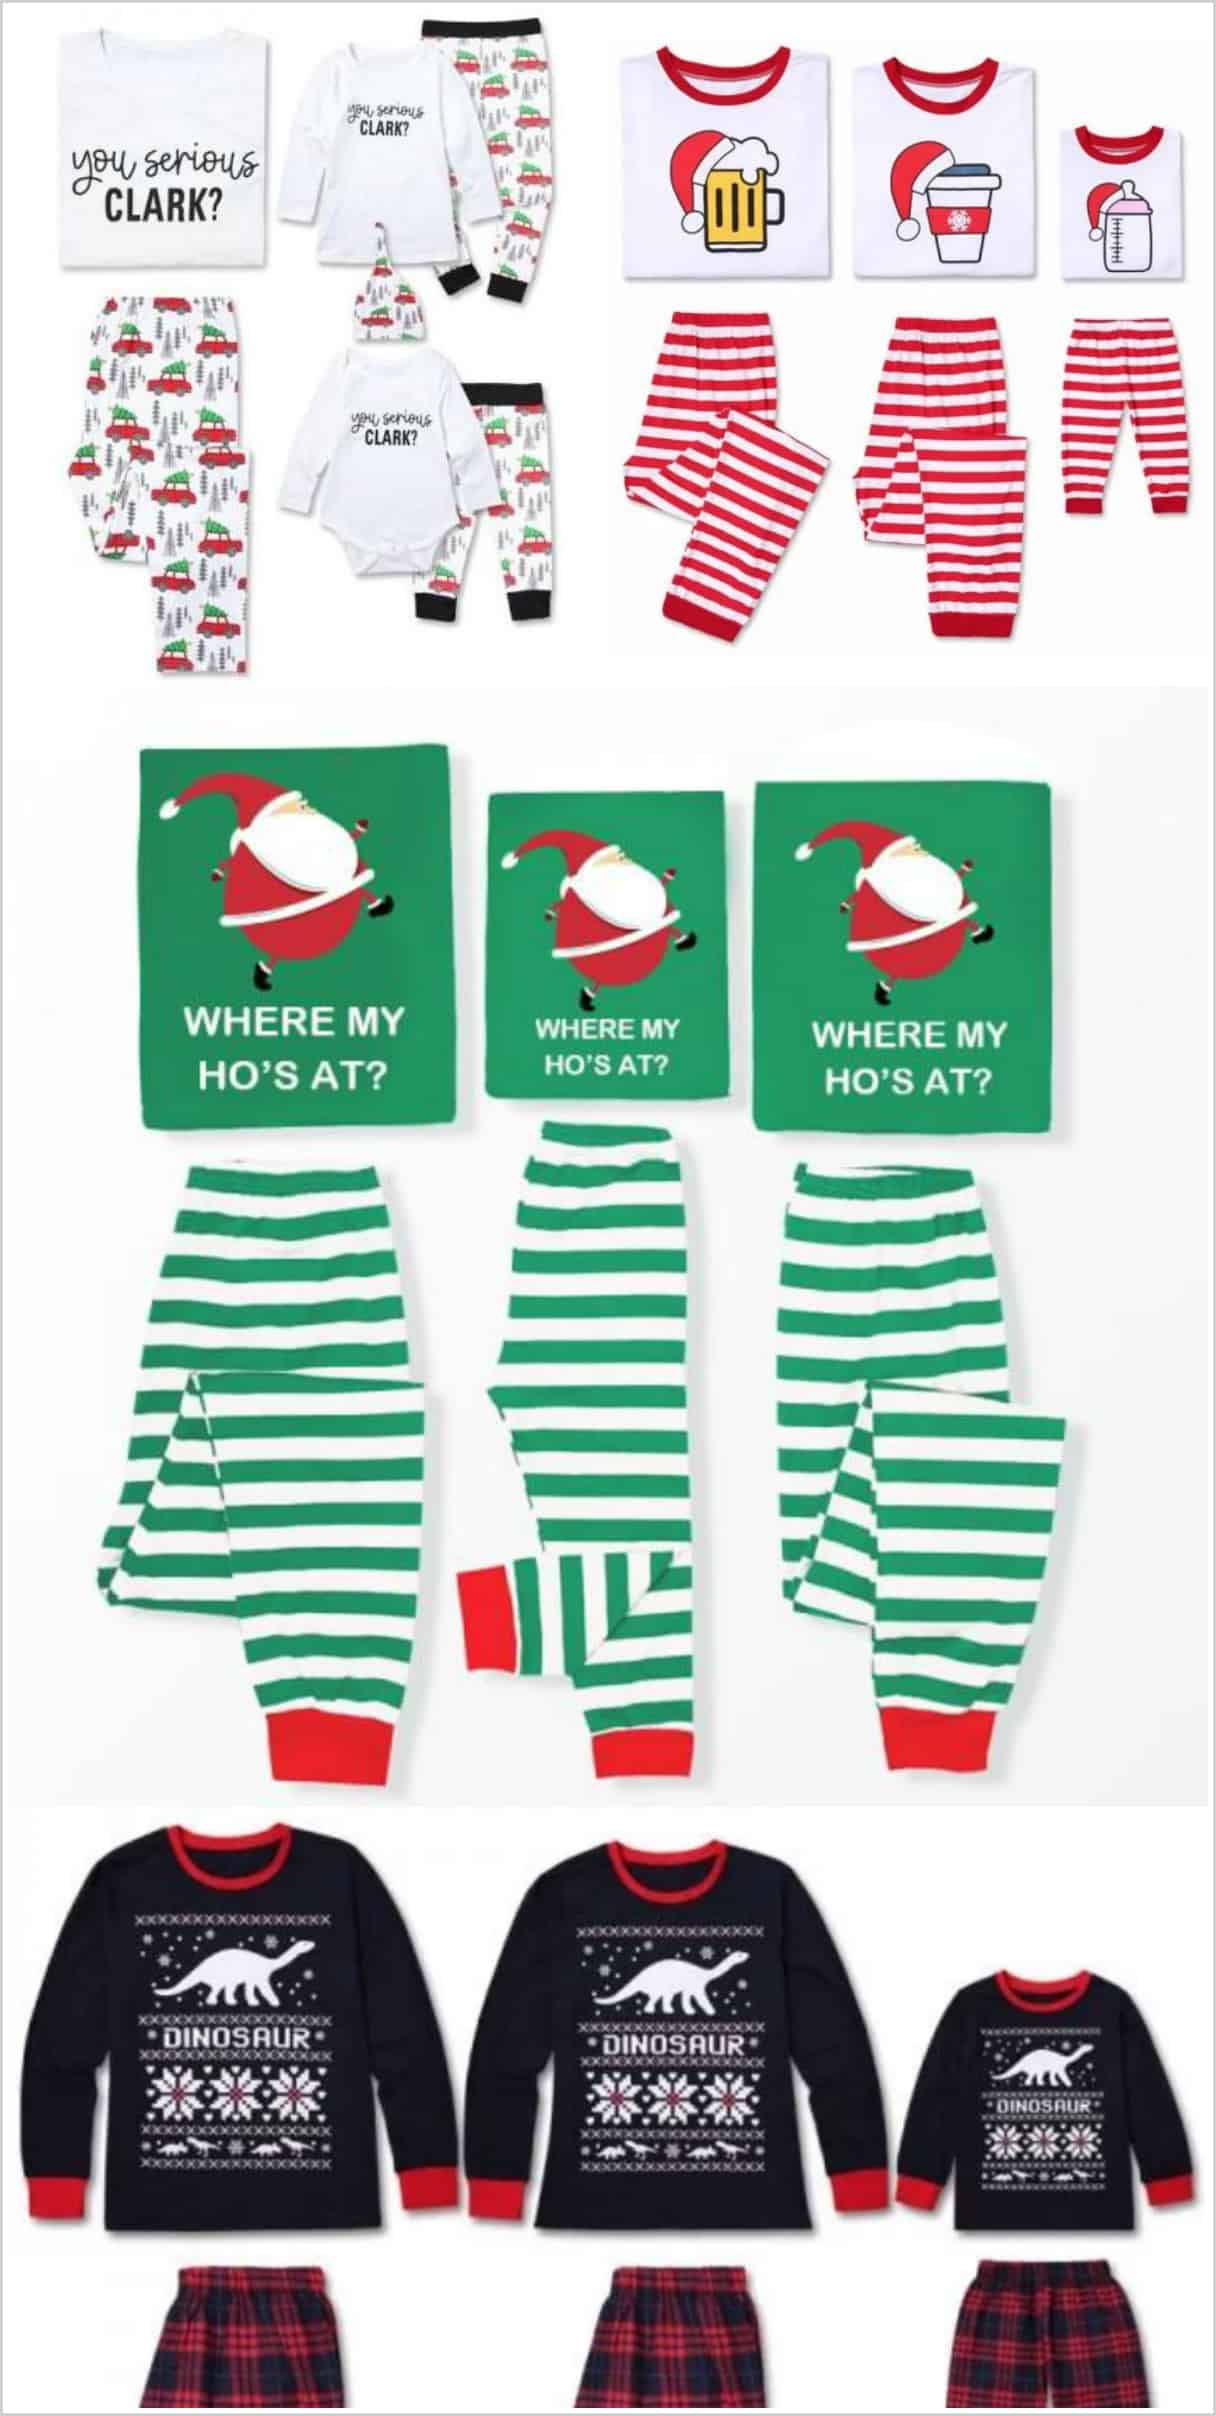 74de28e67 The Best Selection of Matching Funny Family Christmas Pajamas